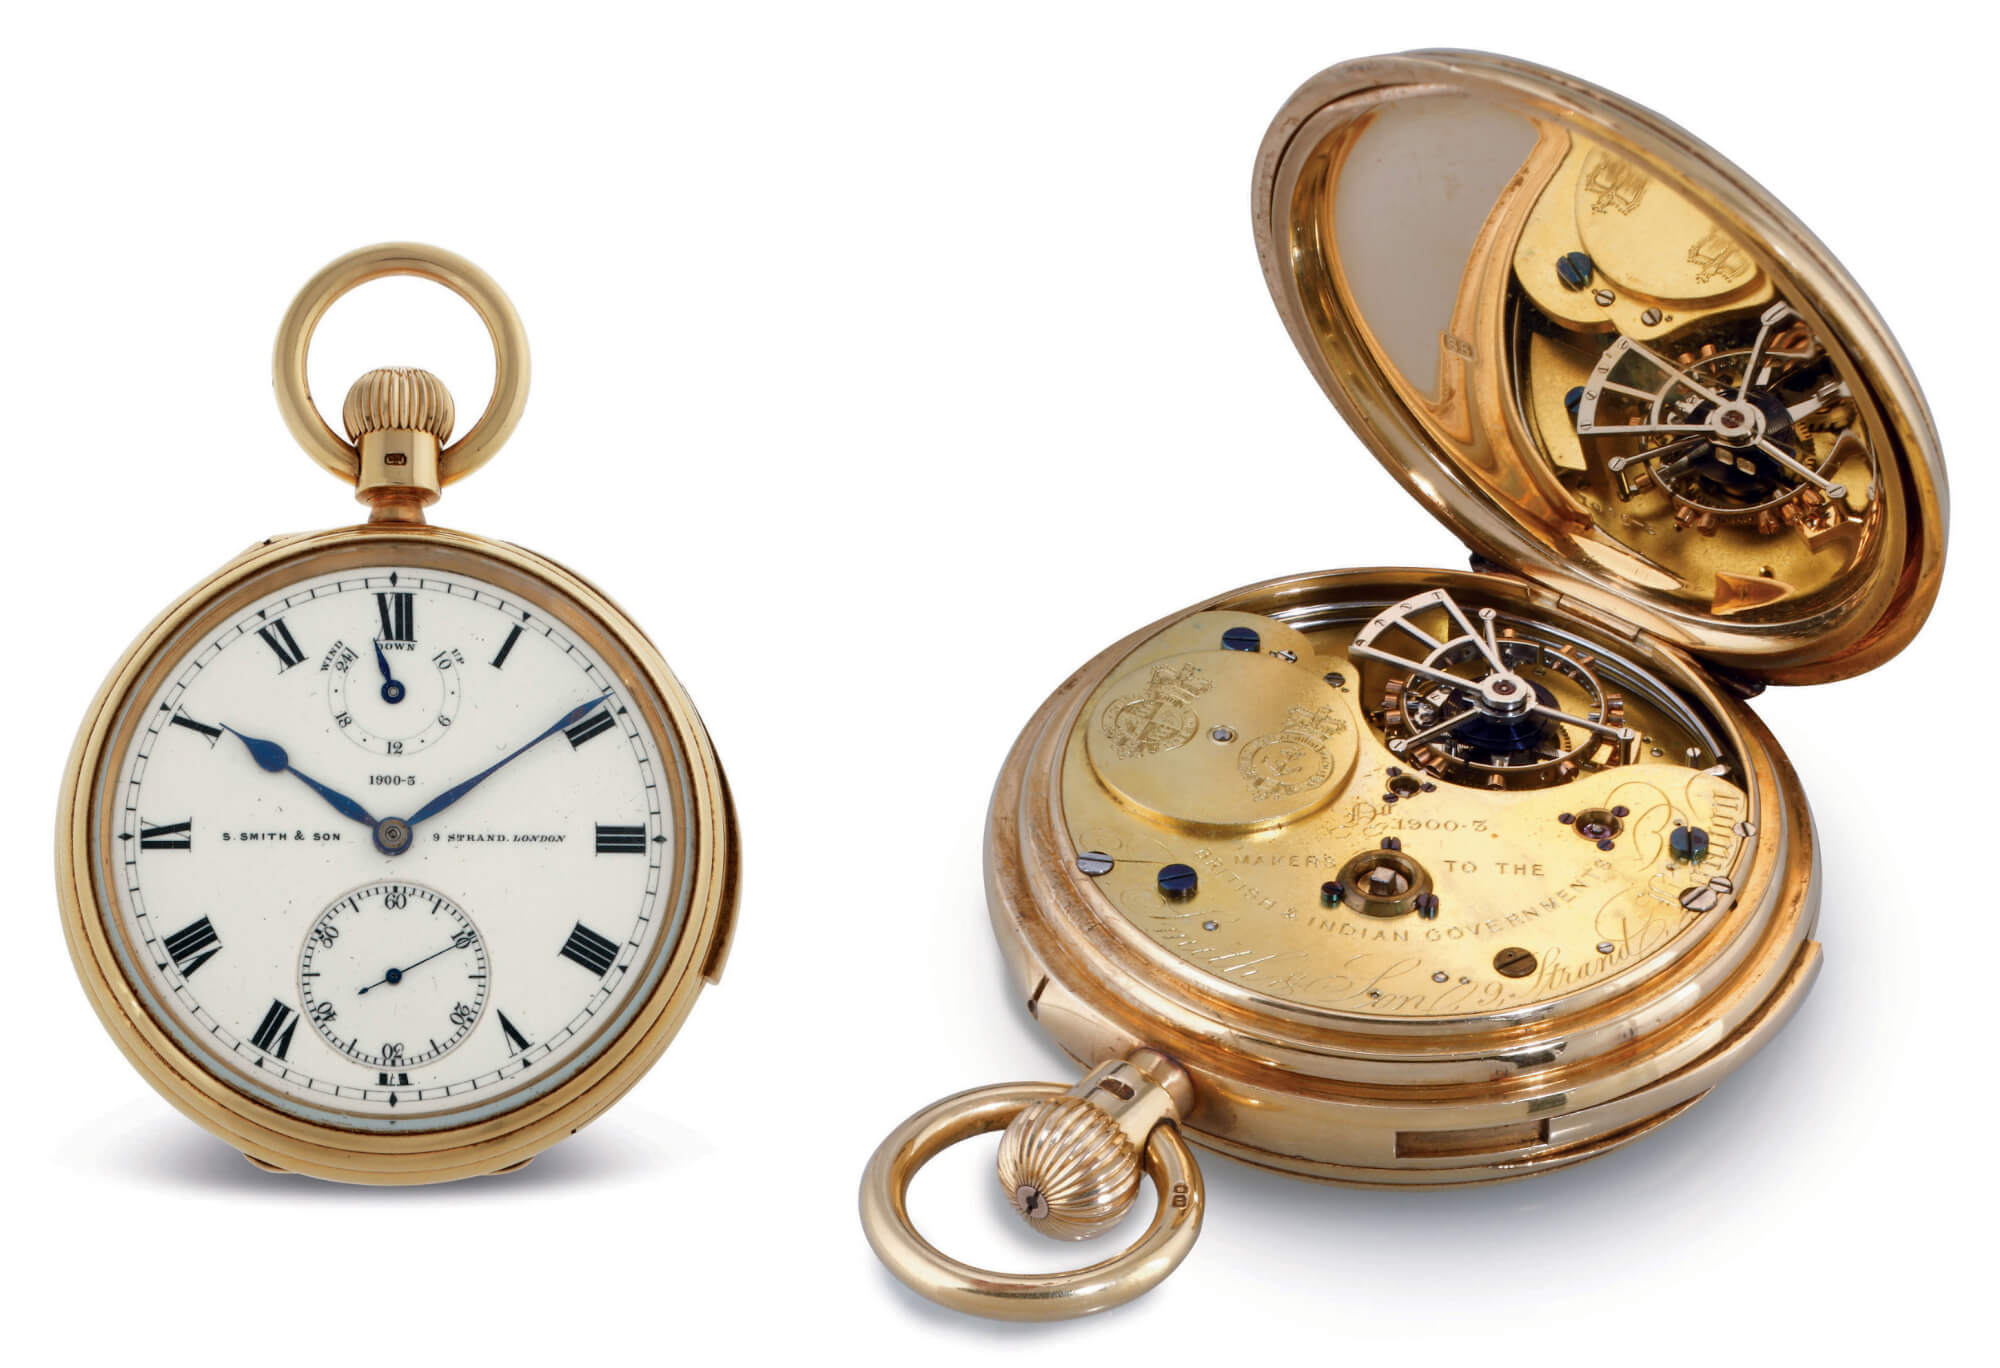 gold-case-watches-pt-2-02